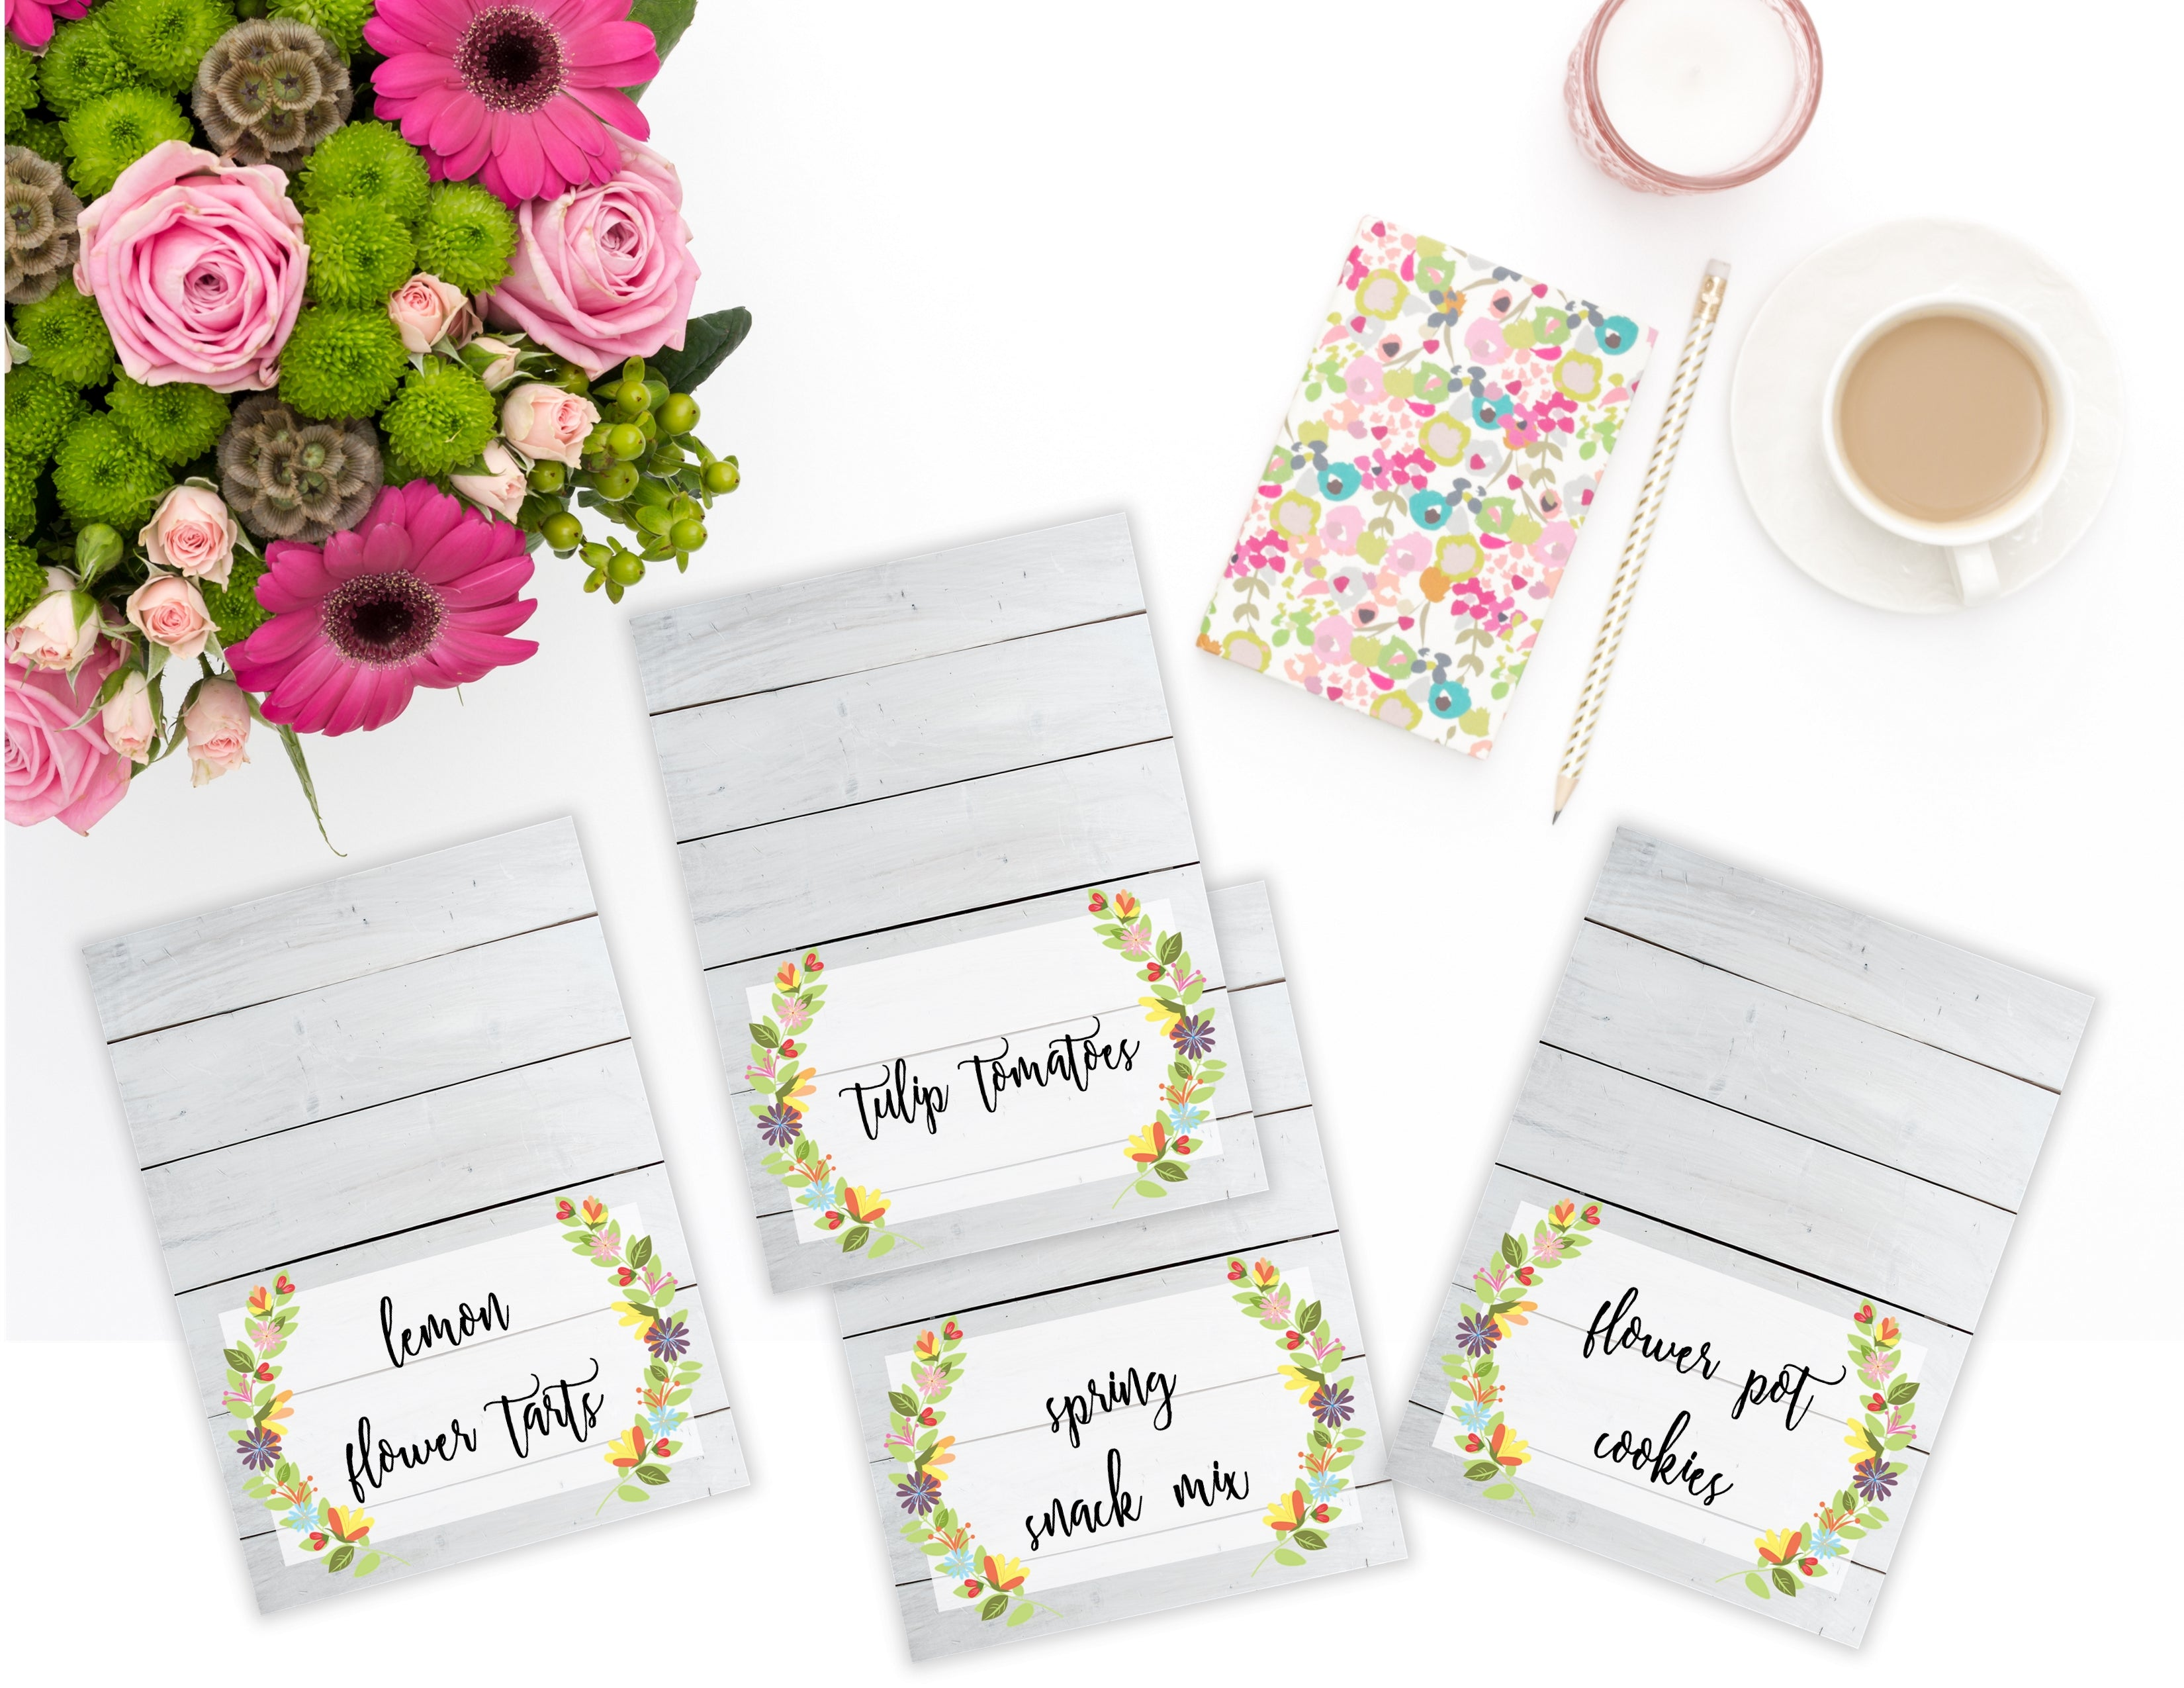 photograph relating to Printable Tent Card named Printable Floral Shiplap Food stuff Label Tent Playing cards, Blank Floral Spring All Bash playing cards as a result of SUNSHINETULIPDESIGN